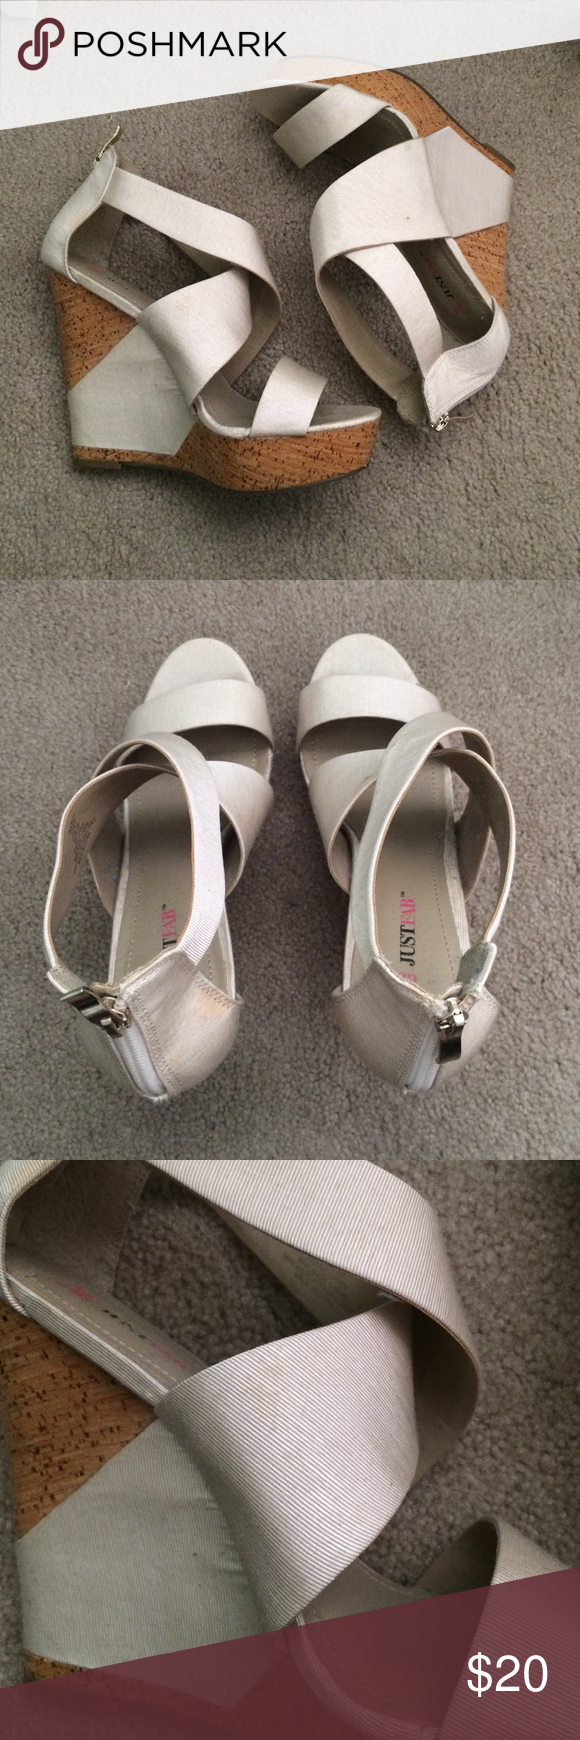 "Cream Wedge Sandals Cream colored straps with approx. 5"" heel with approx. 1.5"" platform. Pretty comfy even after wearing a long time. JustFab Shoes Wedges"